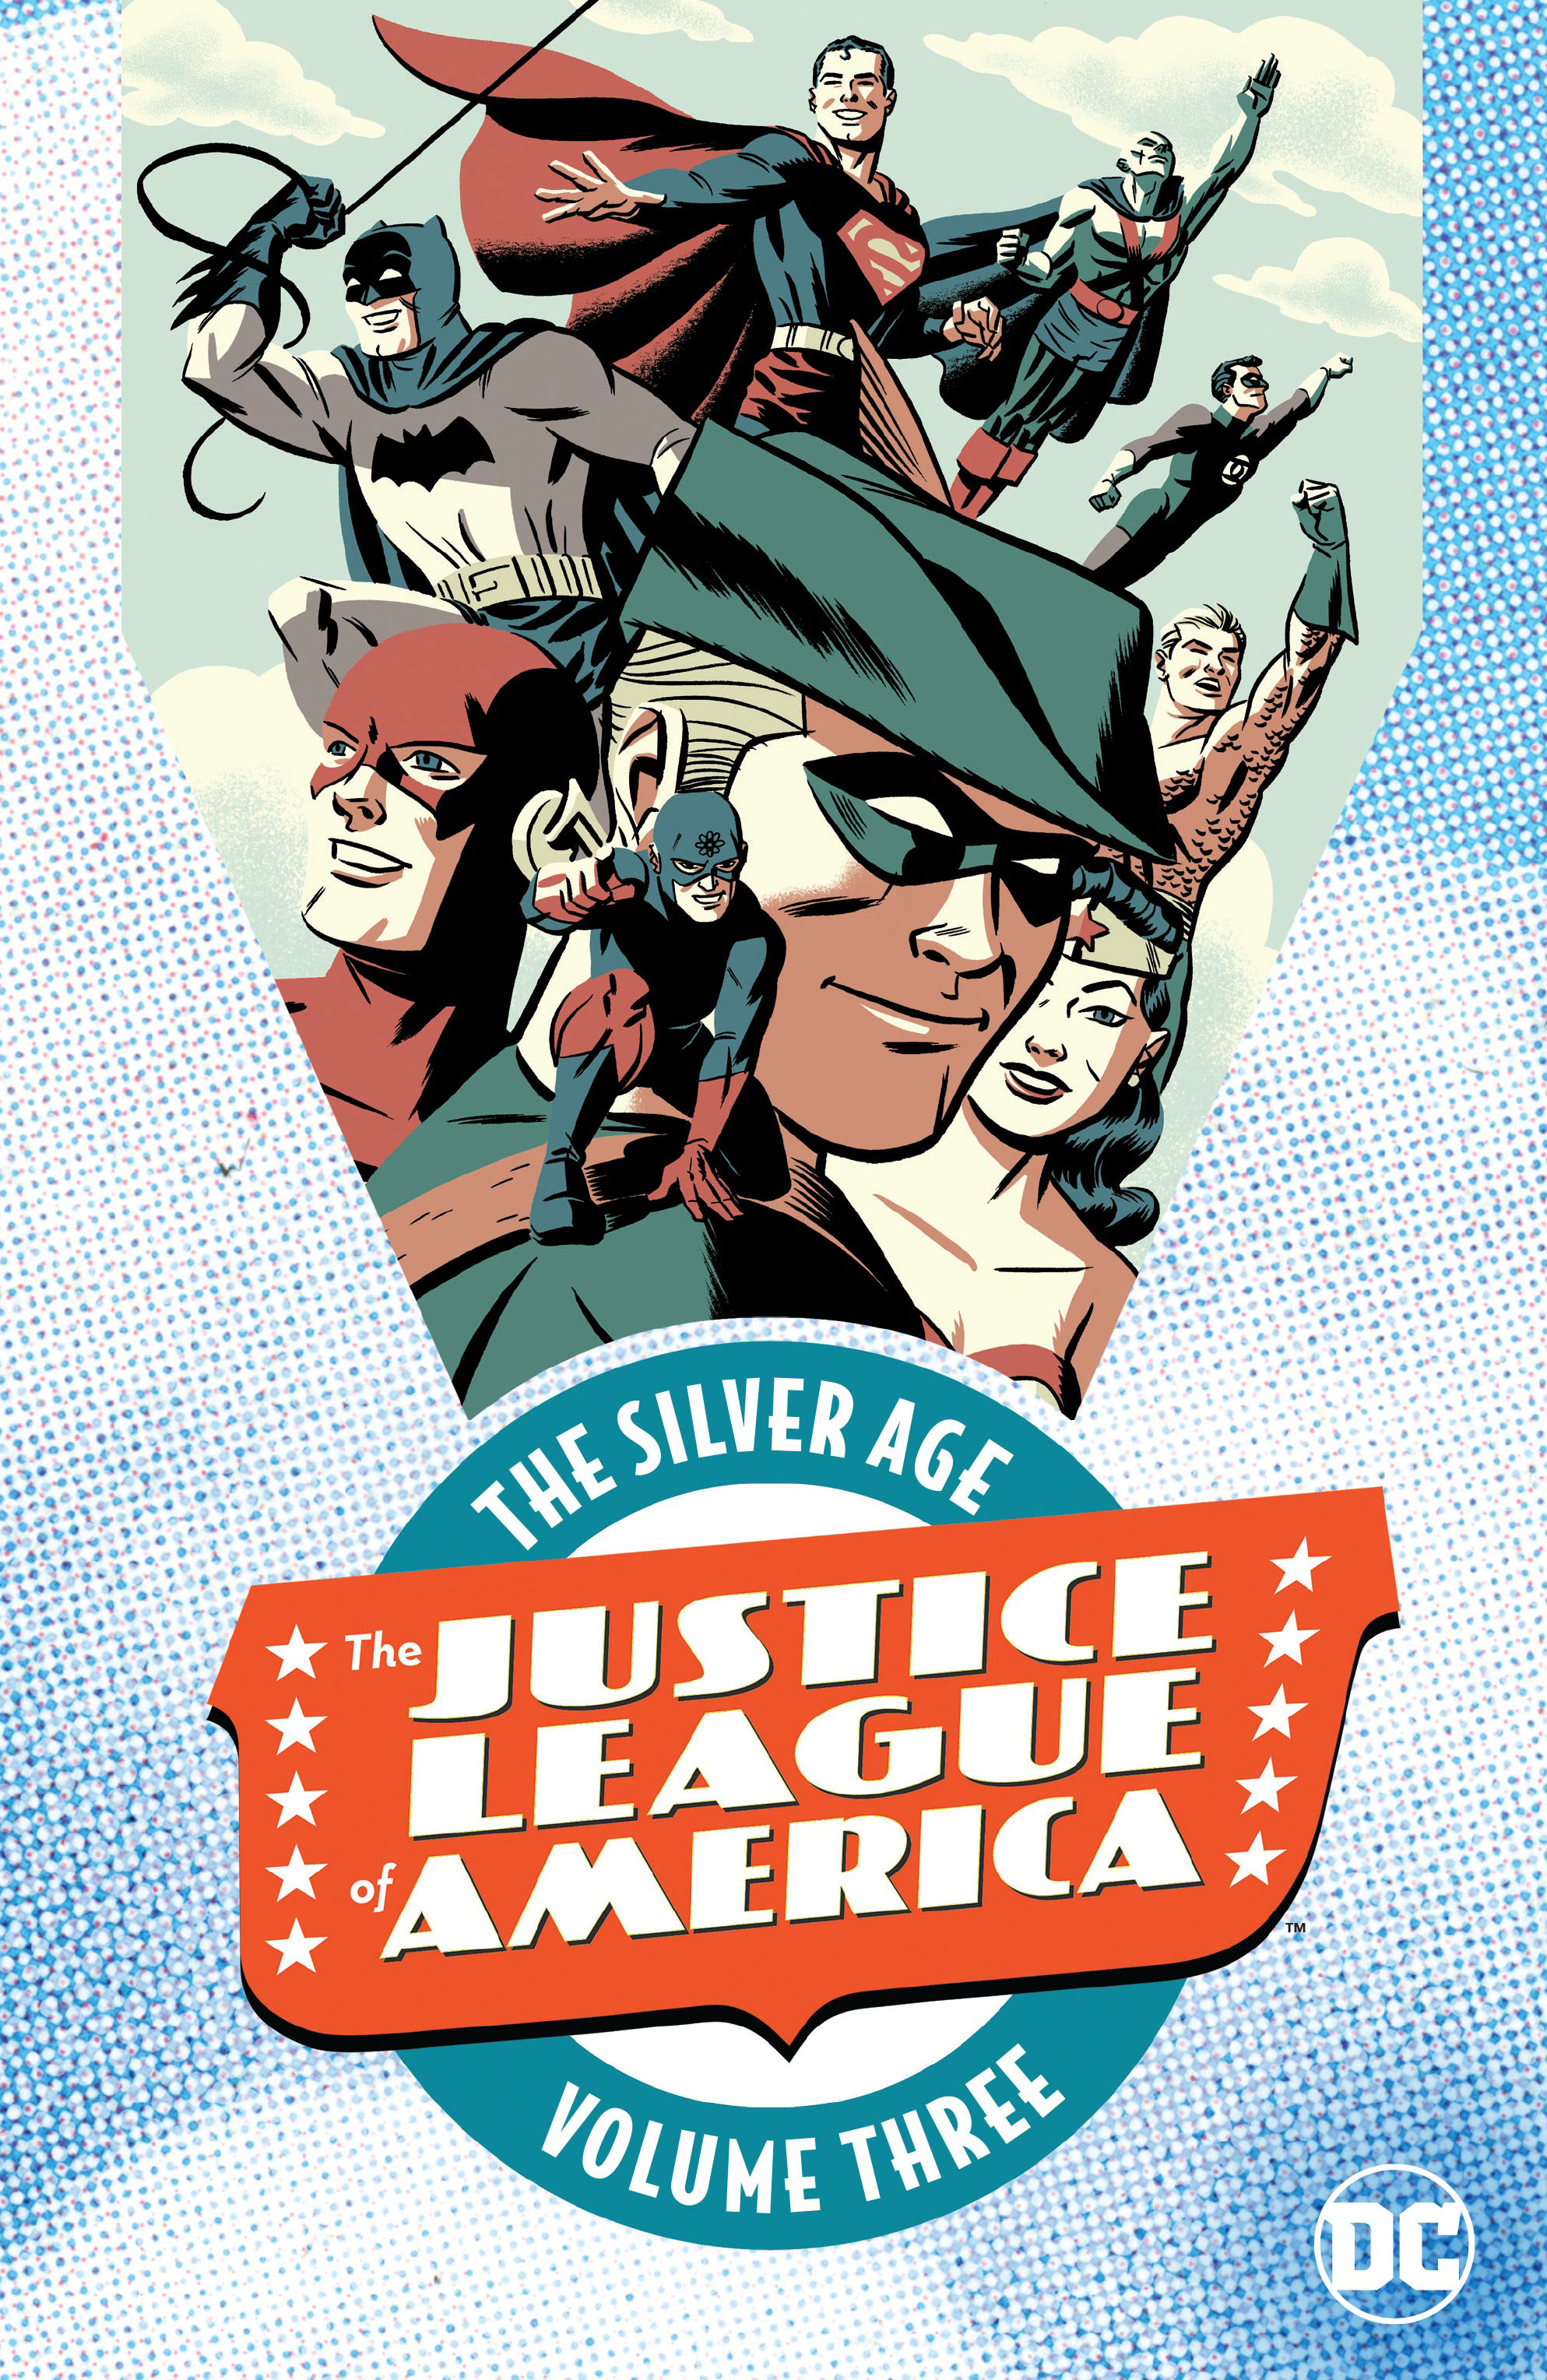 Justice League of America: The Silver Age Vol. 3 бронетехника пламенный мотор набор трансформер танк командный пункт